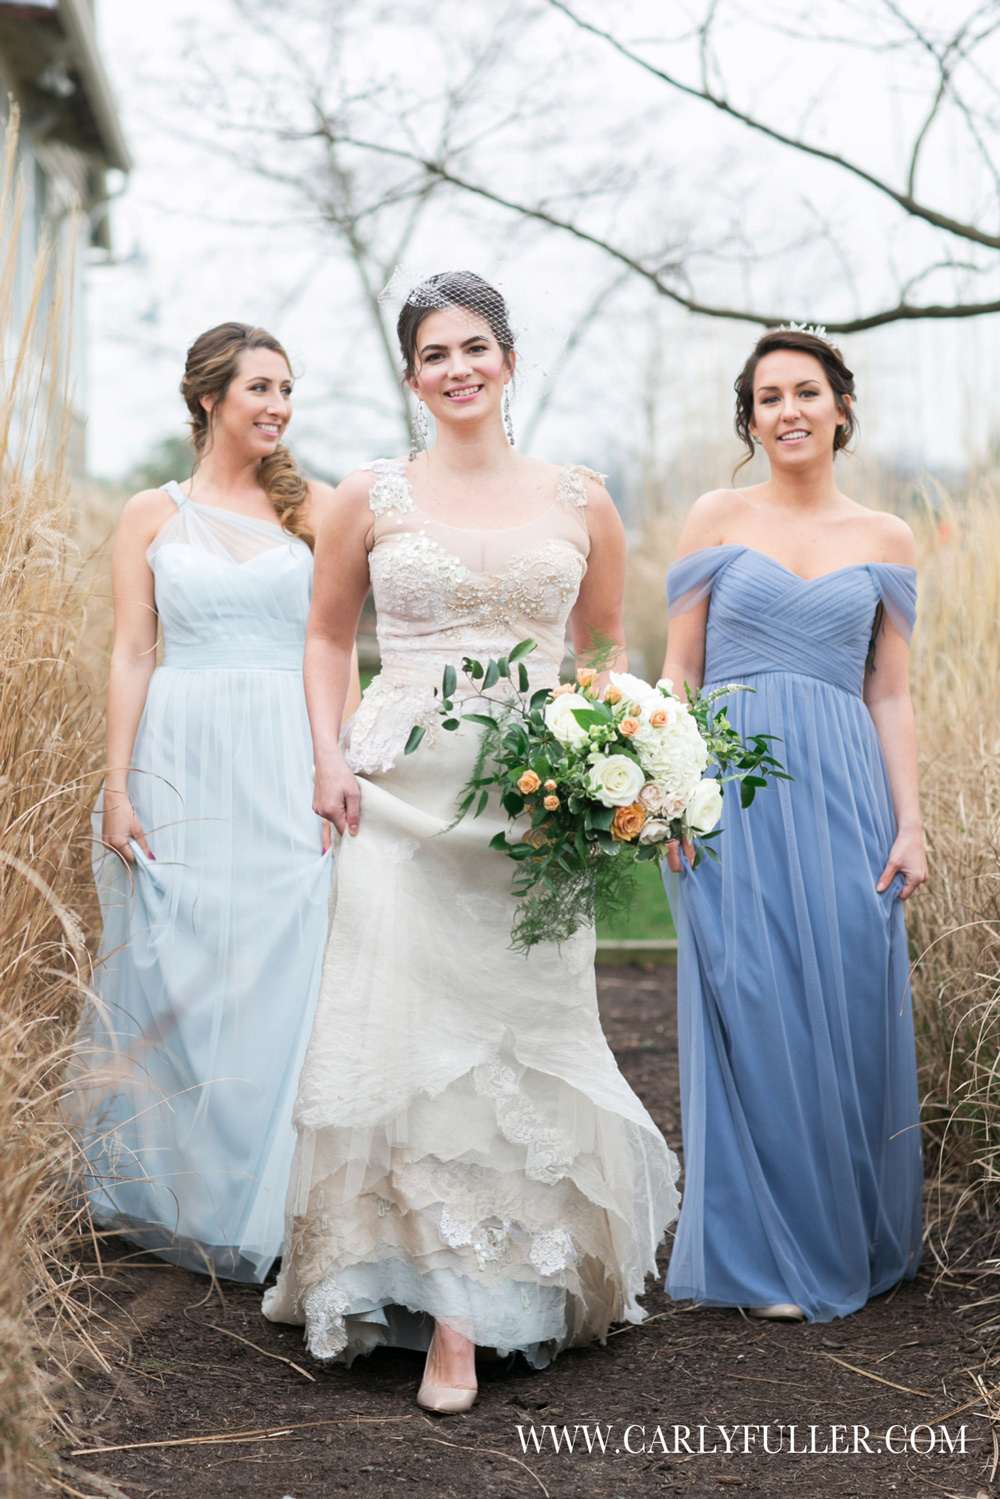 Our bride in couture Jill Andrews Gowns, with her lovely maids in dresses by  Bella Bridesmaids . All headpieces by Jill Andrews Gowns.